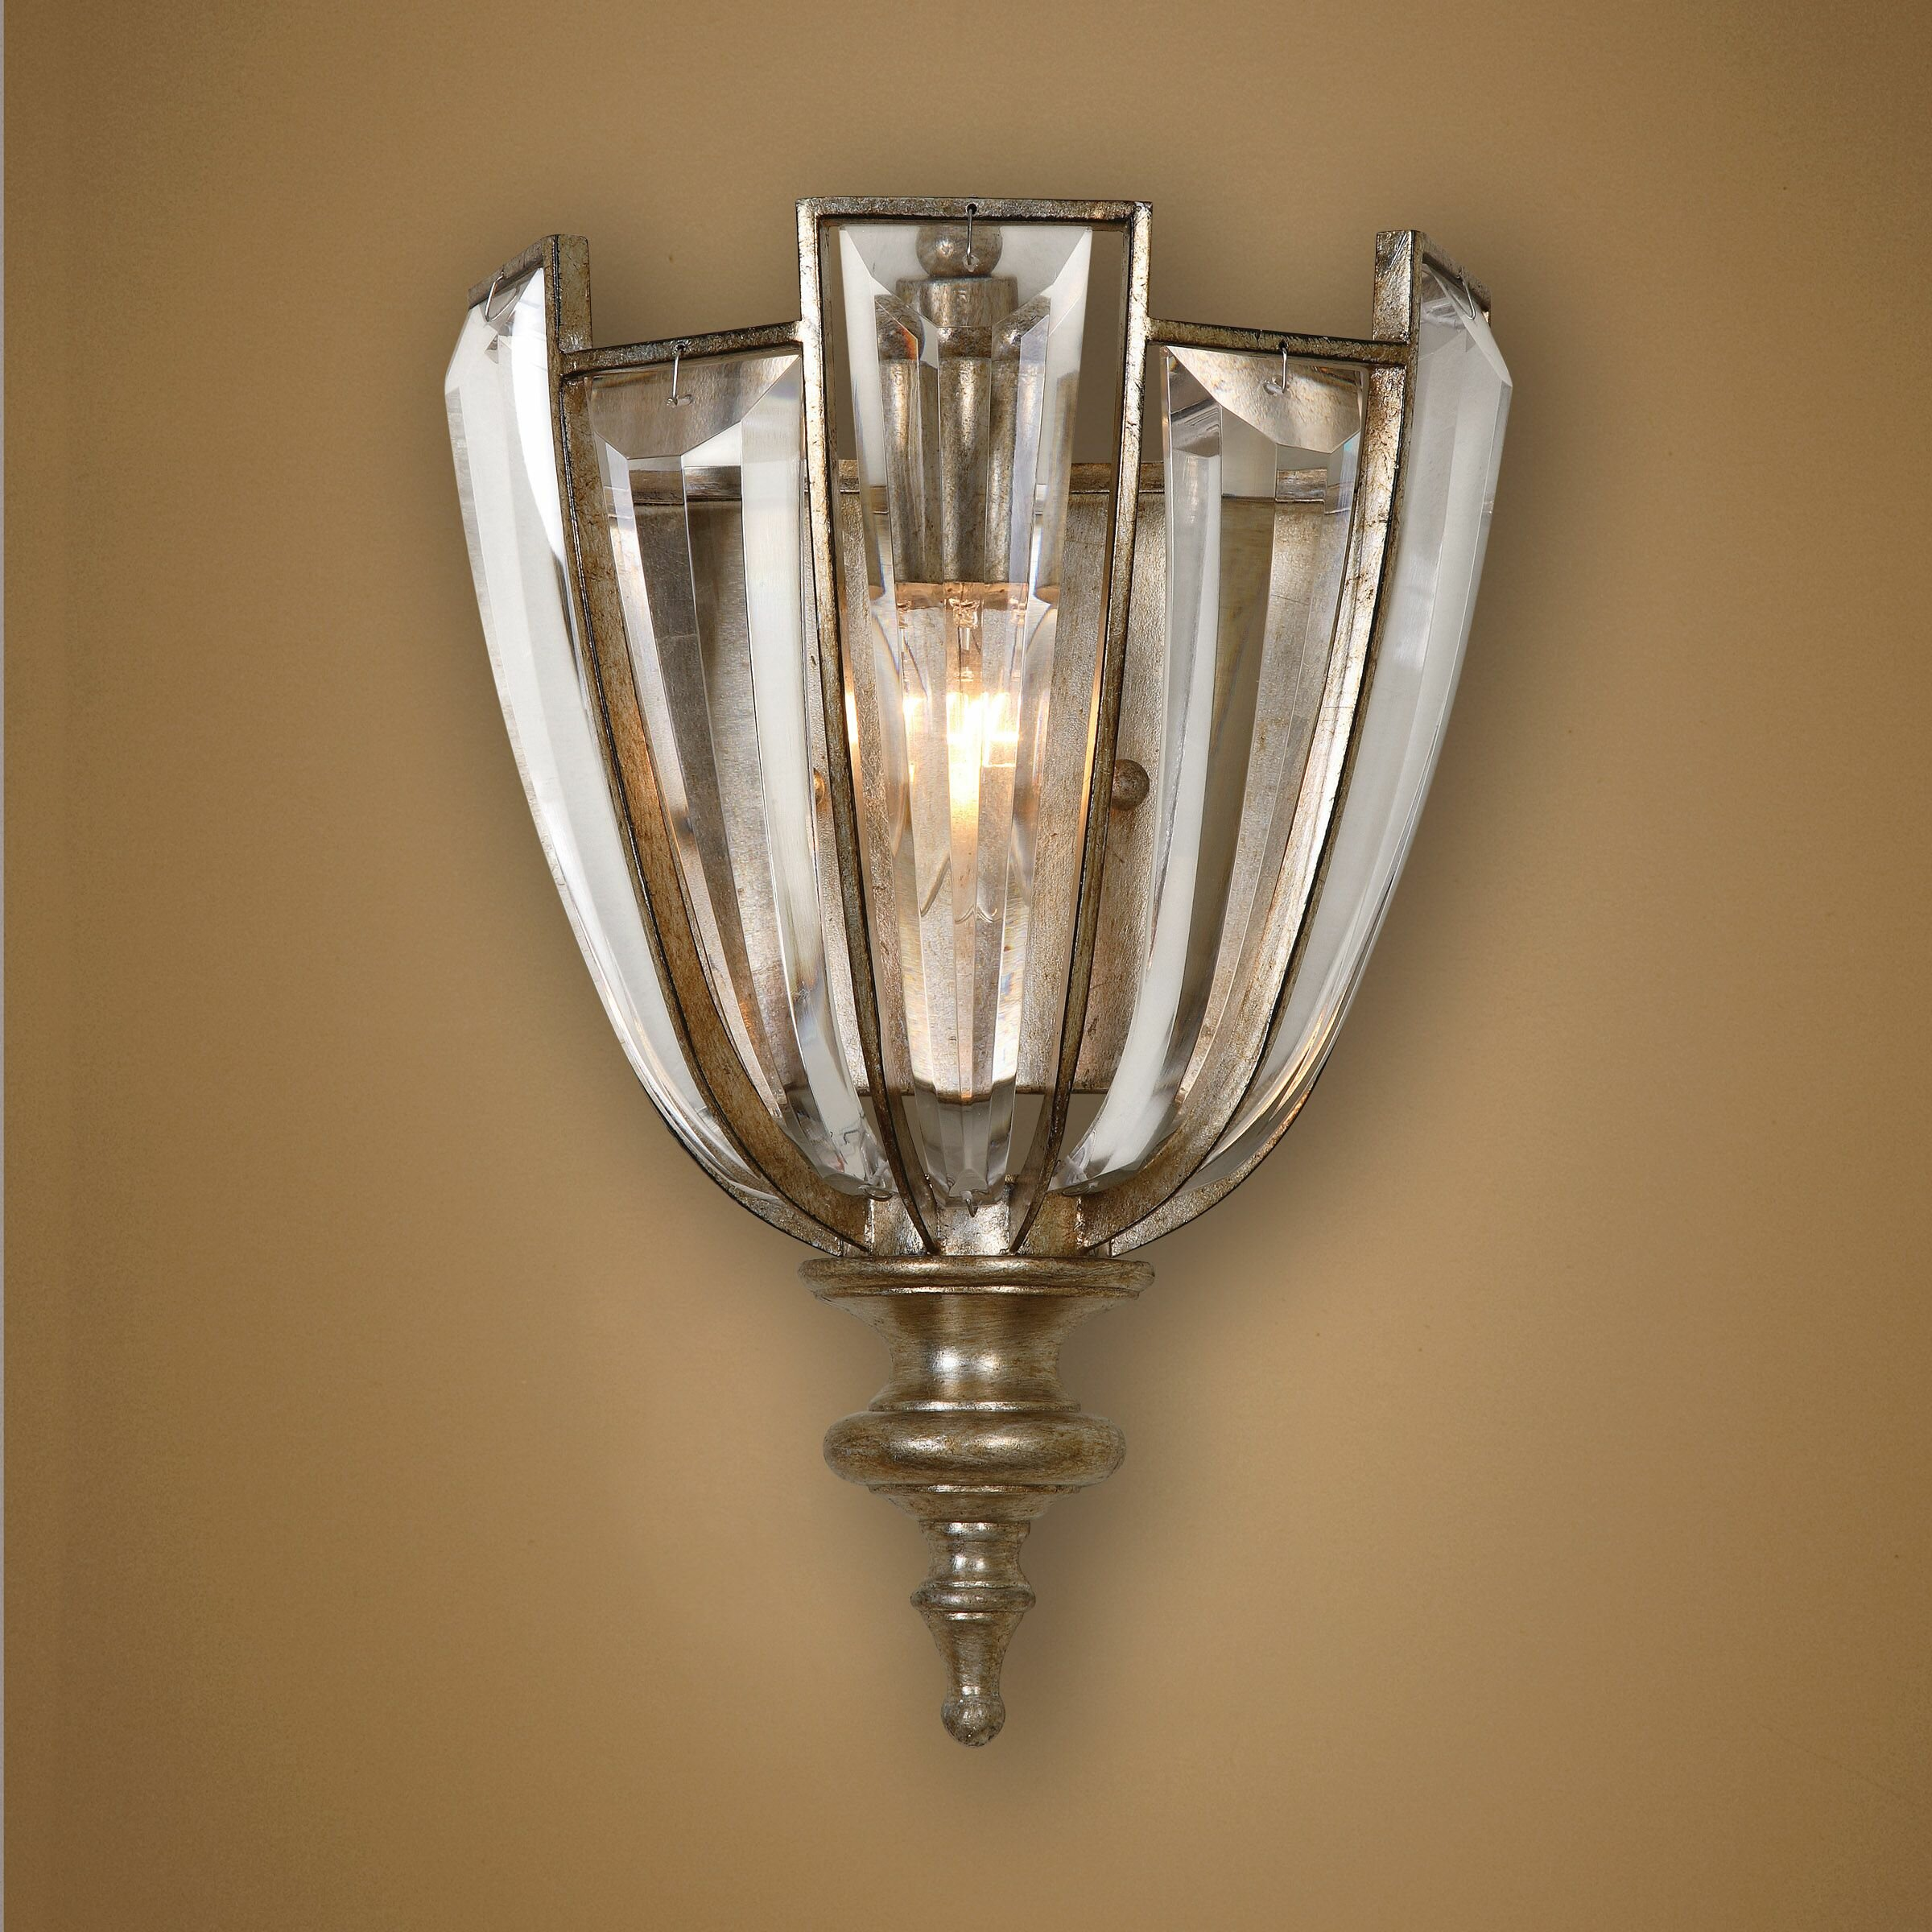 Wall Sconces At Wayfair : Uttermost Vicentina 1 Light Wall Sconce & Reviews Wayfair